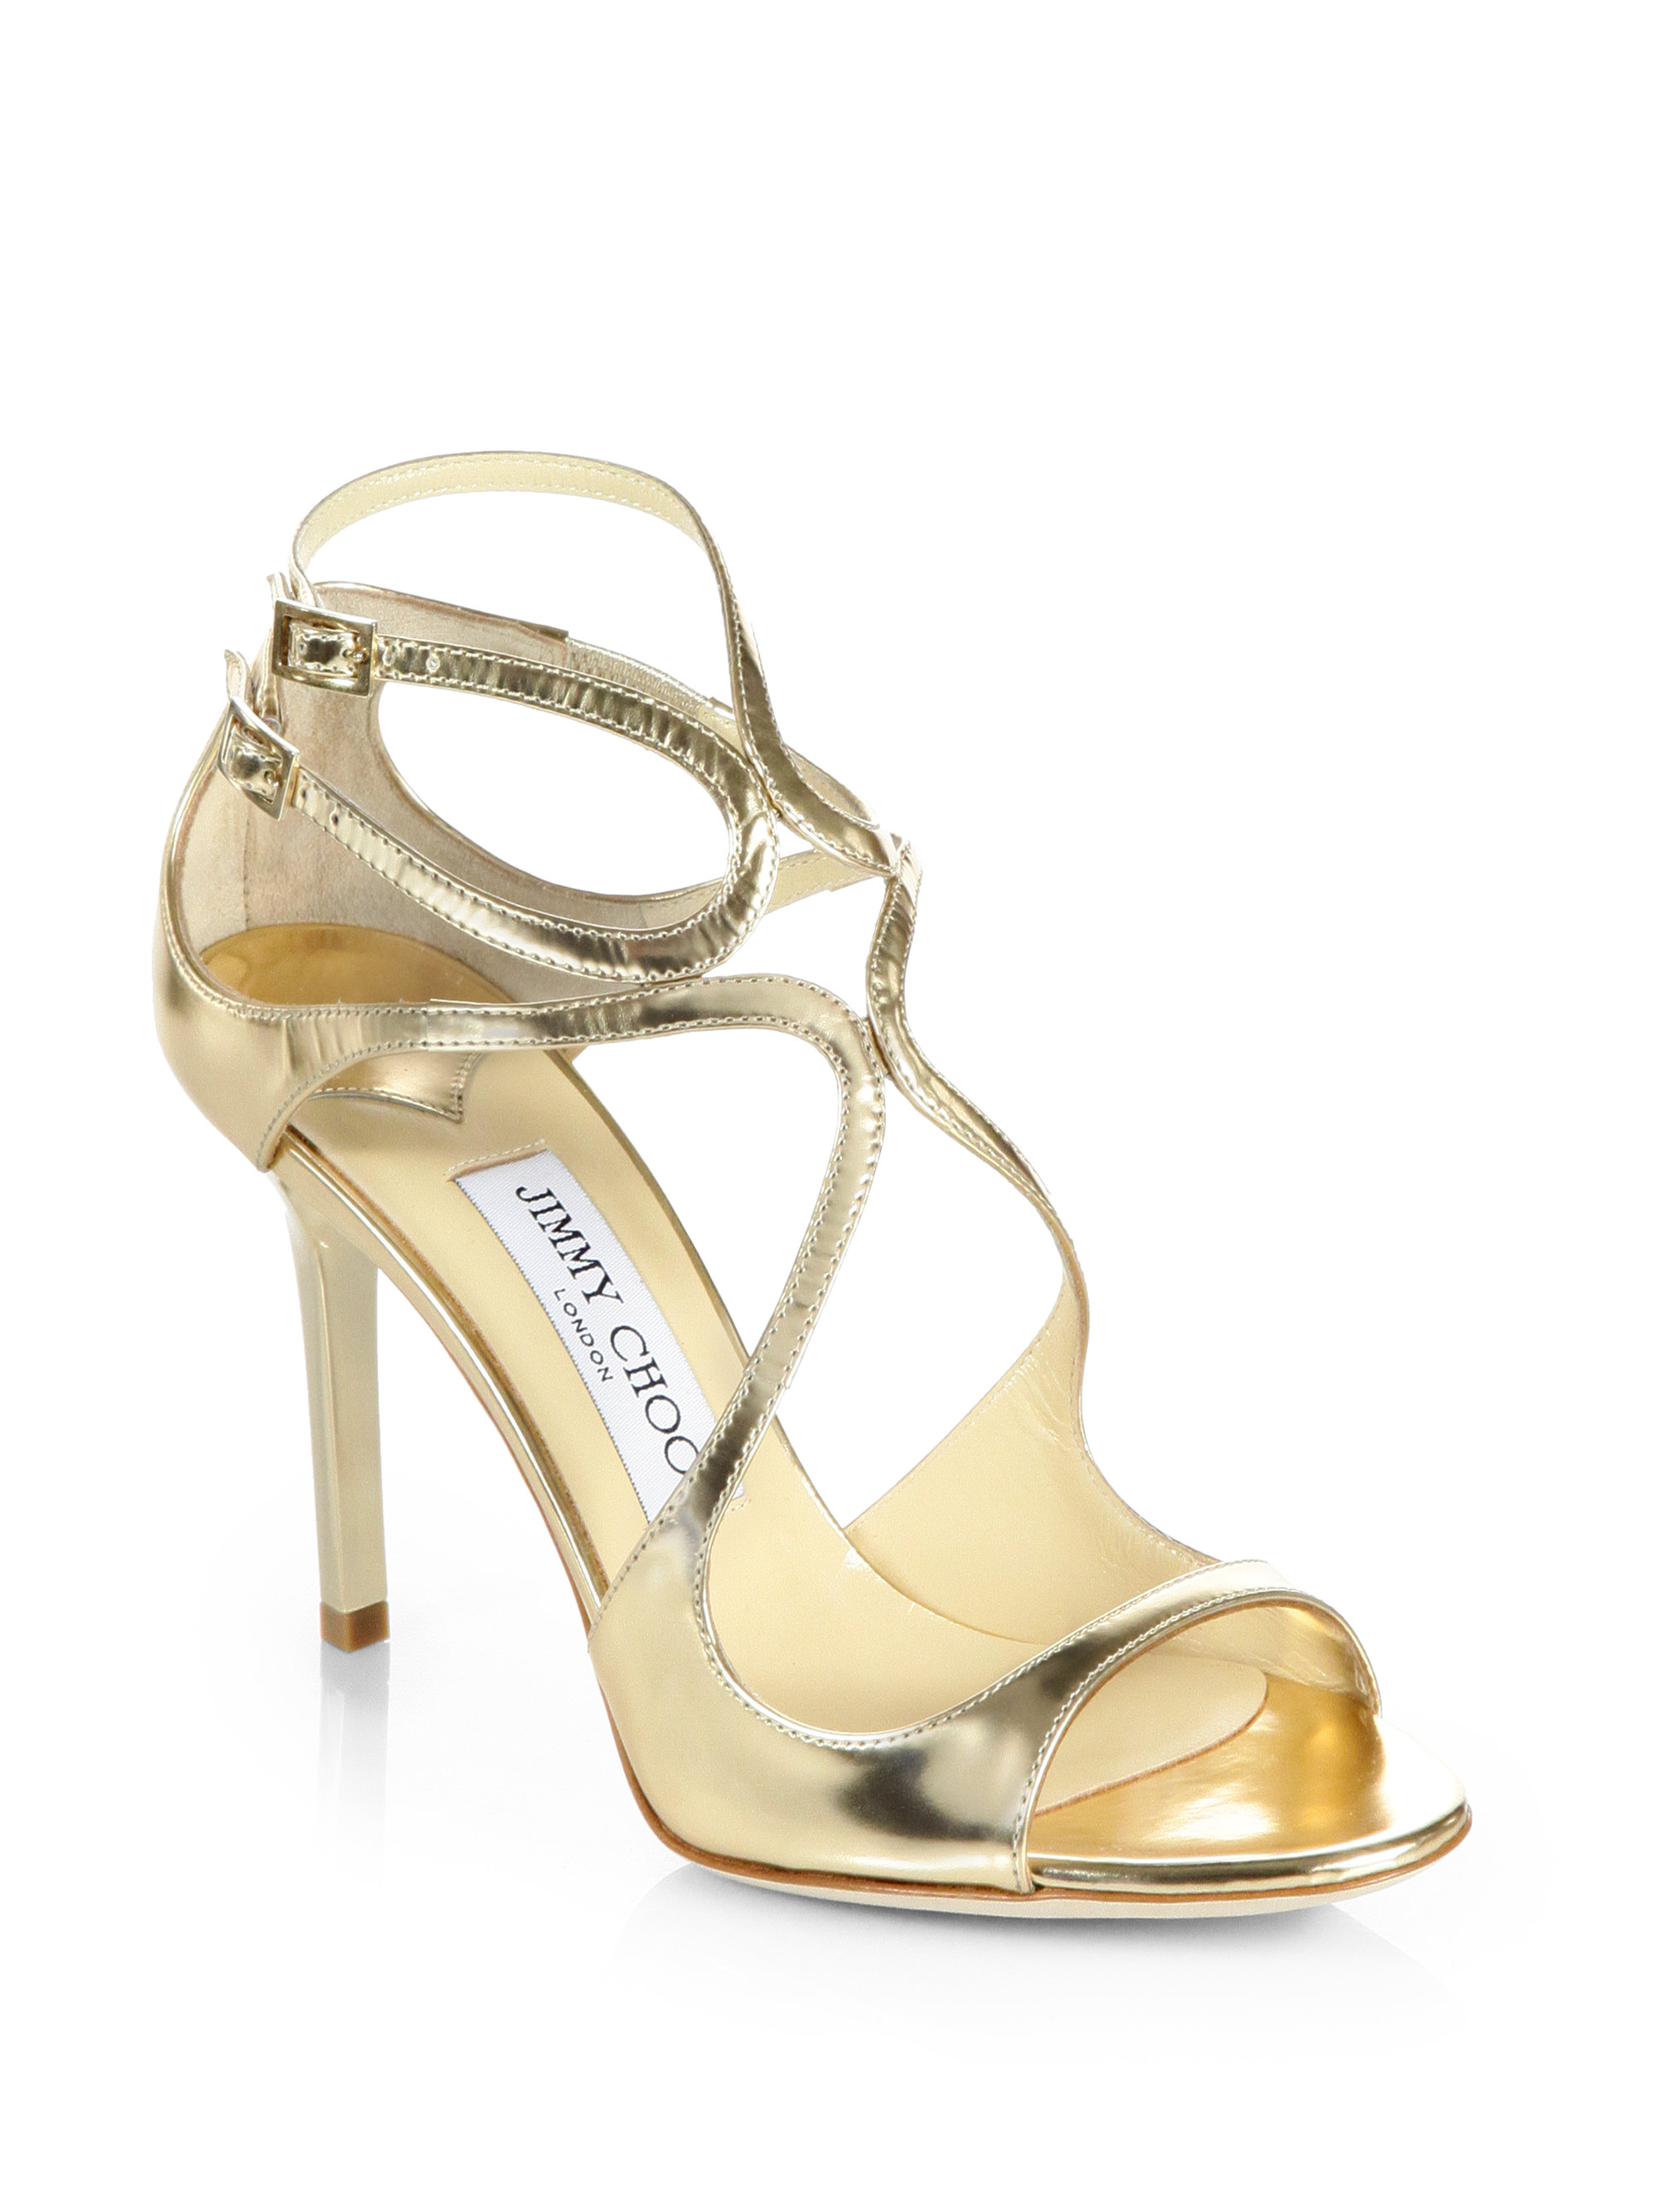 7023270a485 Gallery. Previously sold at  Saks Fifth Avenue · Women s Sergio Rossi  Godiva Women s Jimmy Choo ...